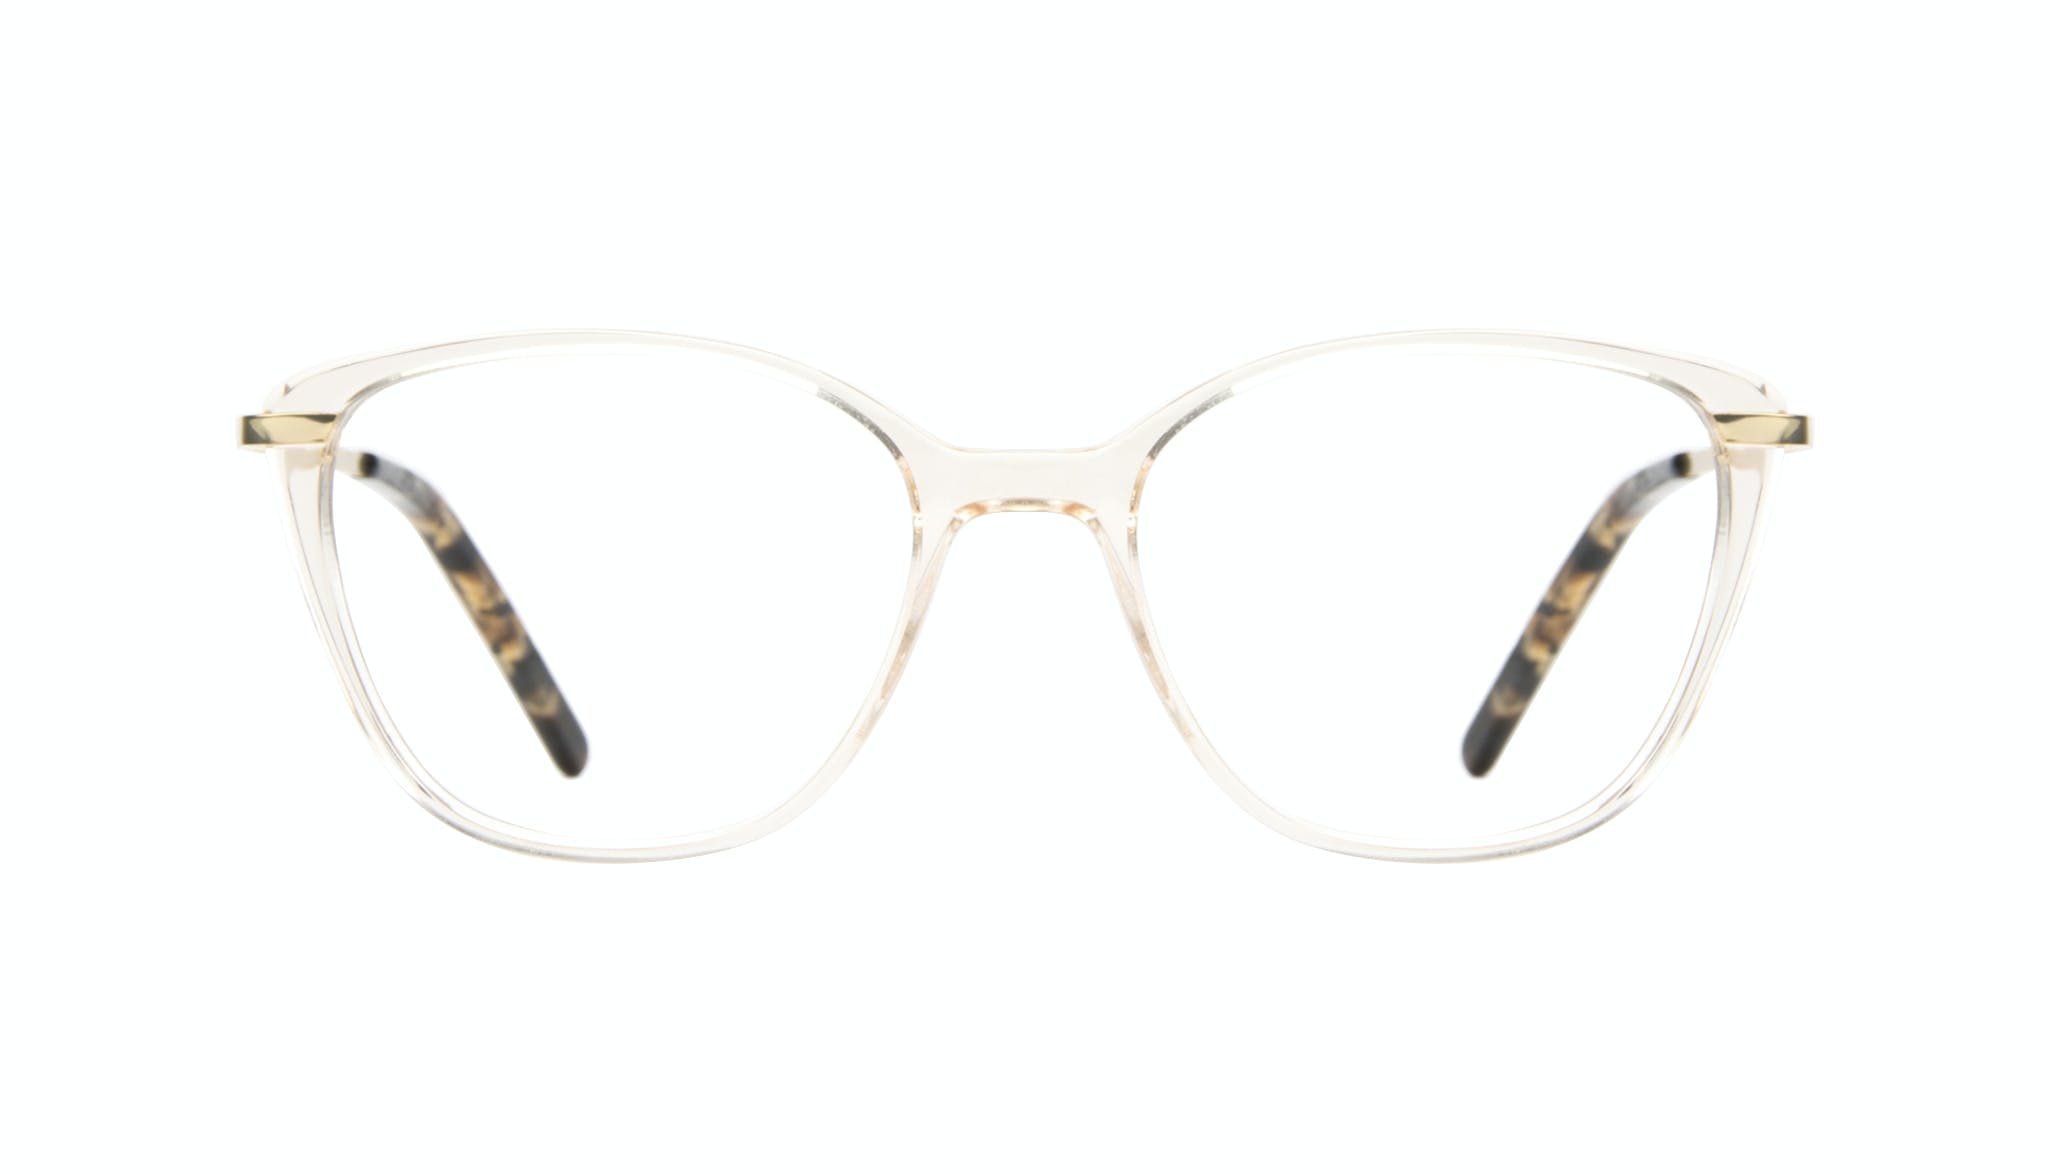 Affordable Fashion Glasses Cat Eye Rectangle Square Eyeglasses Women Illusion Blond Metal Front